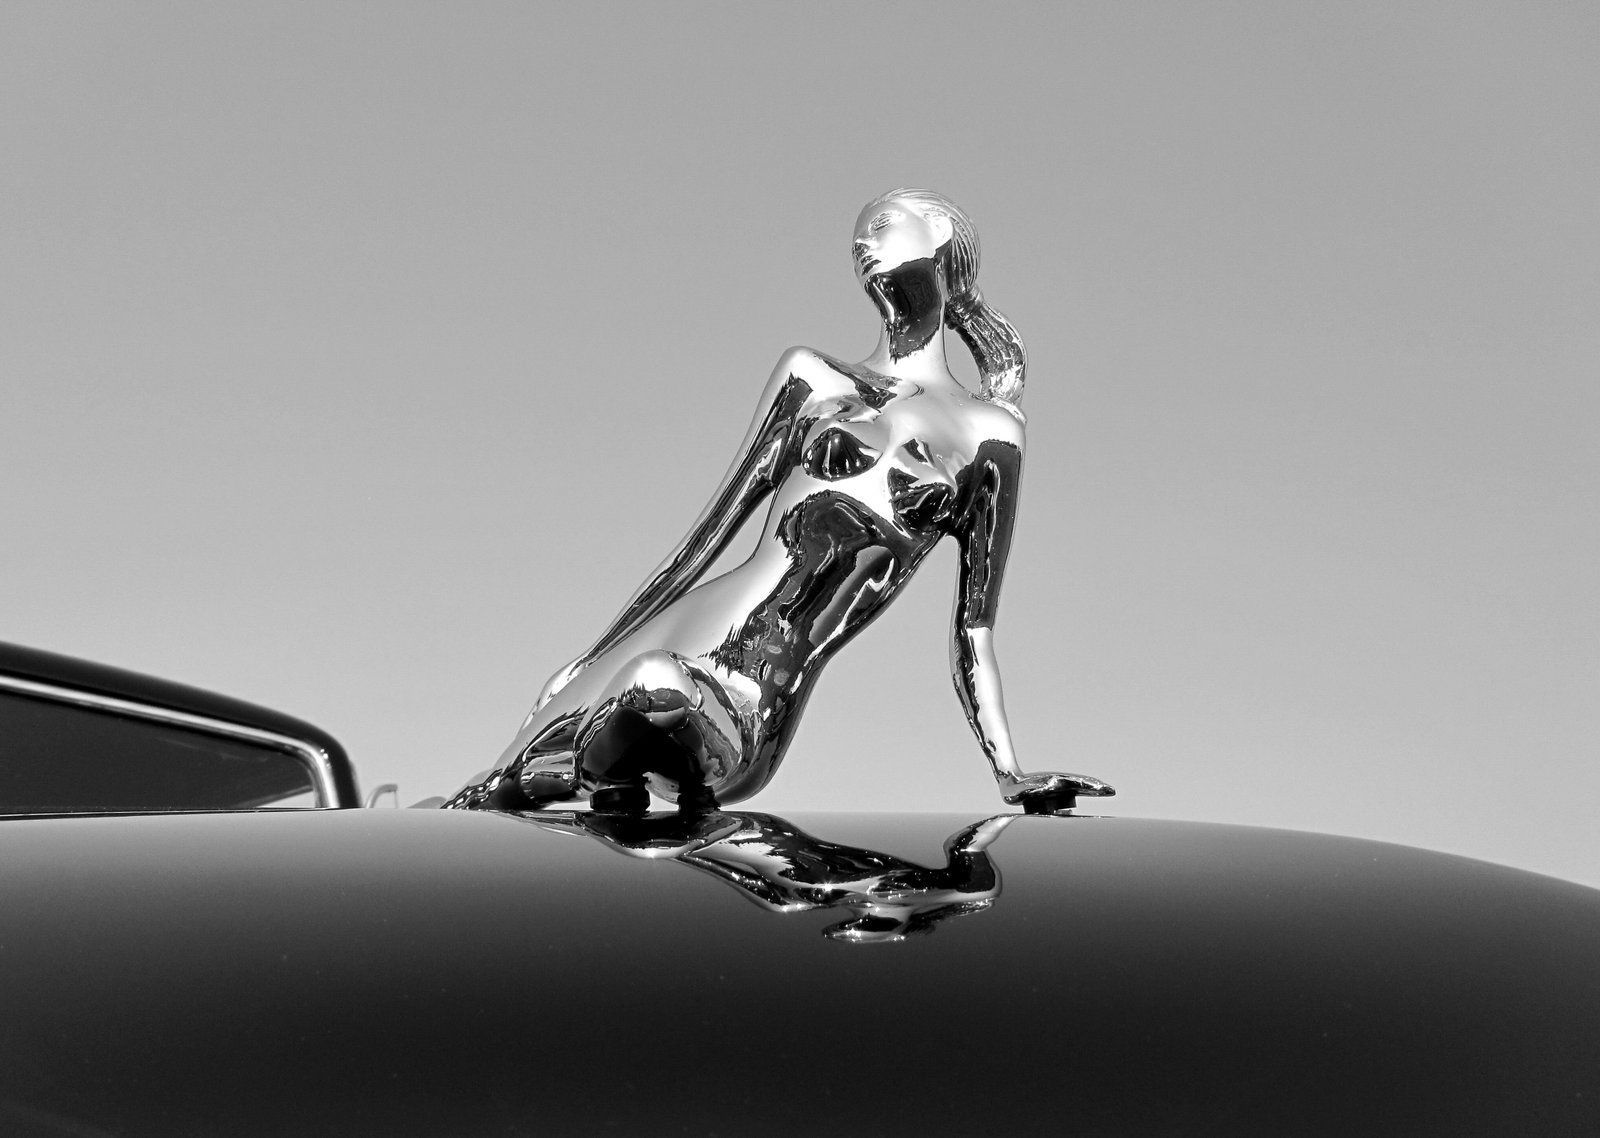 Wing hood ornament - A Spectacular Casting Of A Reclining Nude Woman Finished In Highly Polished Chrome Adorning The Hood Of A 1948 Lincoln Continental With A Deep Black Paint